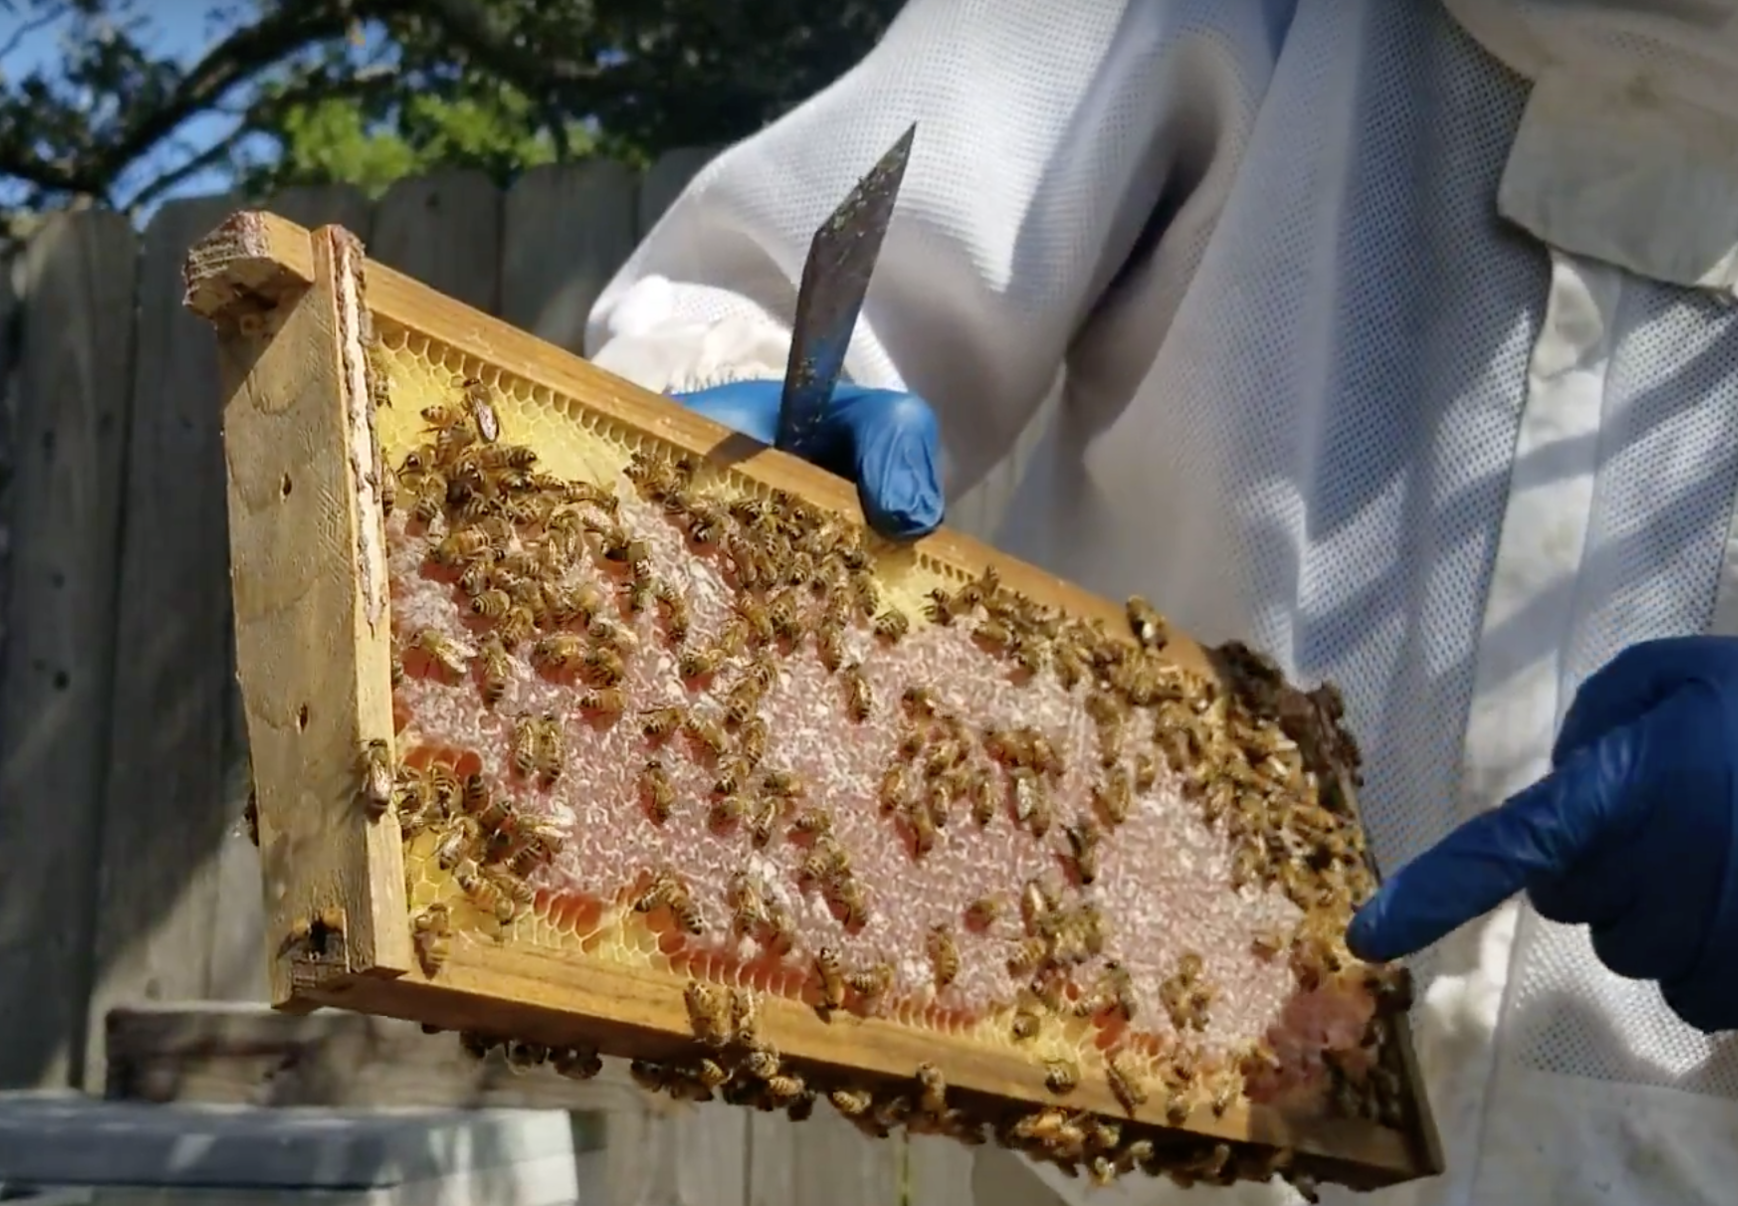 When Tracey Johnson requested a tour of Florida Bee Farm, she got more than she bargained for.